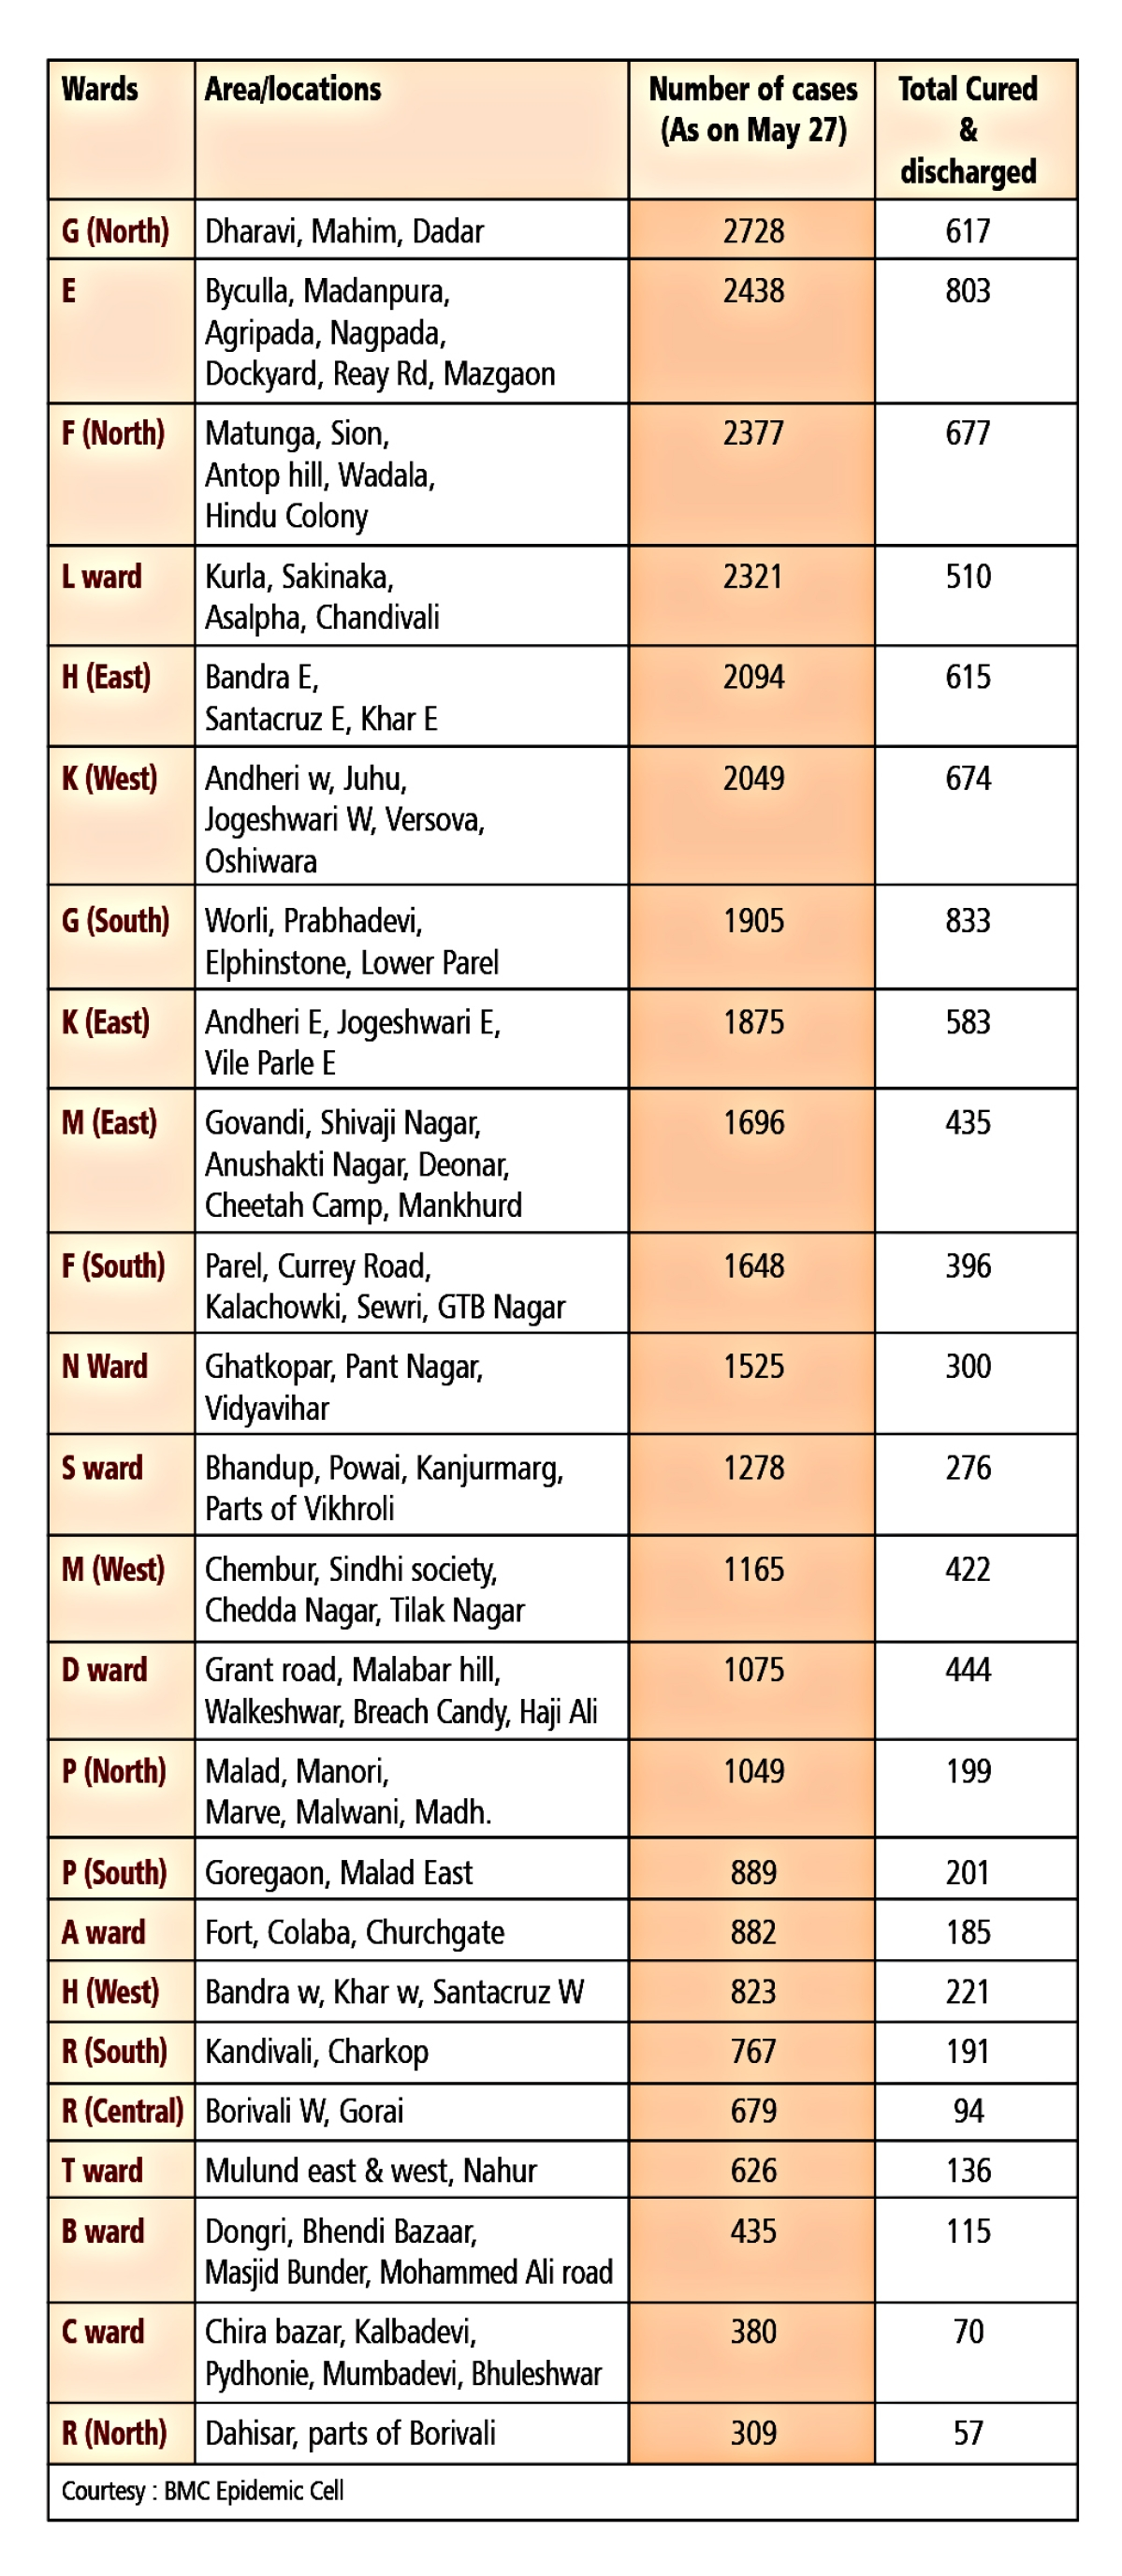 Mumbai is the worst-affected COVID-19 hotspots in the country with 35,273 positive cases and 1135 fatalities recorded till Thursday night. The BMC infographic provides the ward-wise break-up of 33,013 cases, of which 9,054 have been cured.